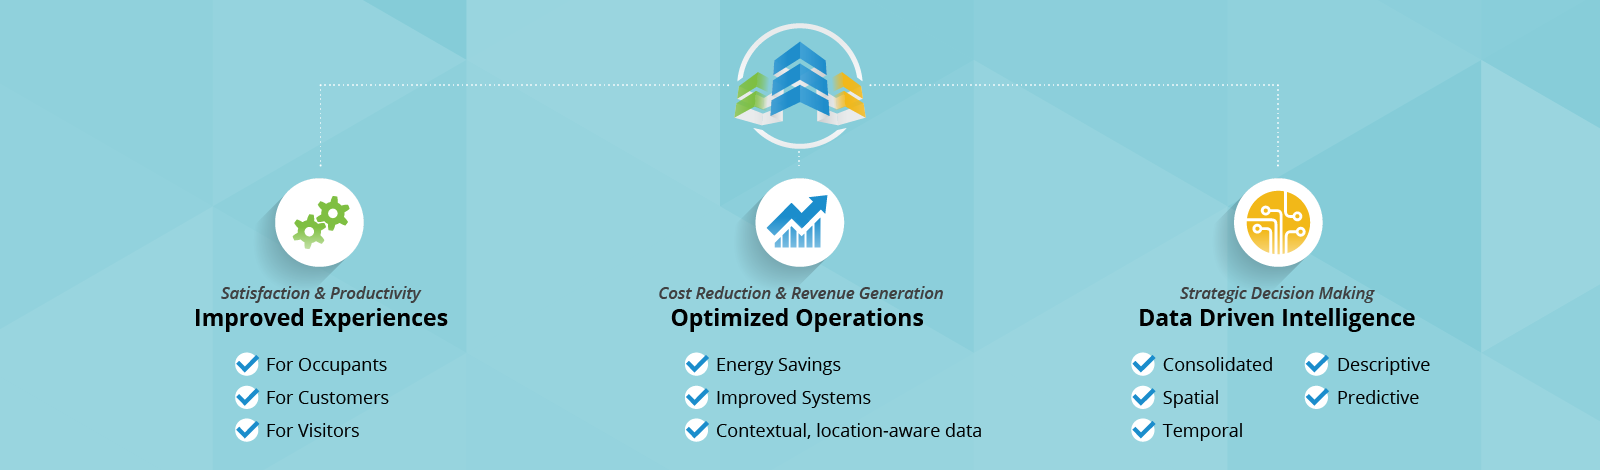 Illustration highlighting benefits of Improved Experiences, Optimized Operations, and Data Driven Intelligence